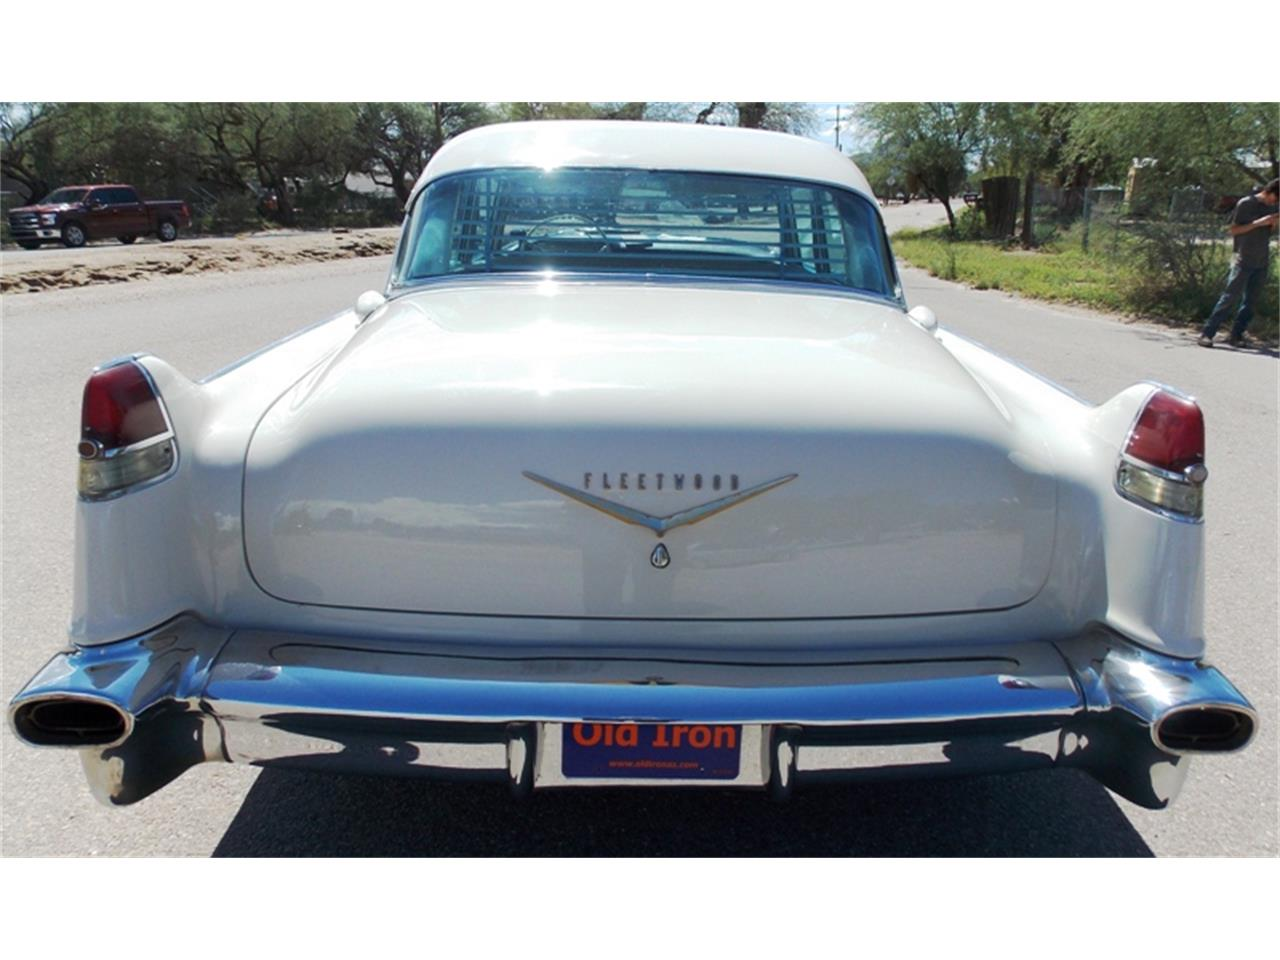 1956 Cadillac Fleetwood 60 Special (CC-1144238) for sale in Tucson, AZ - Arizona